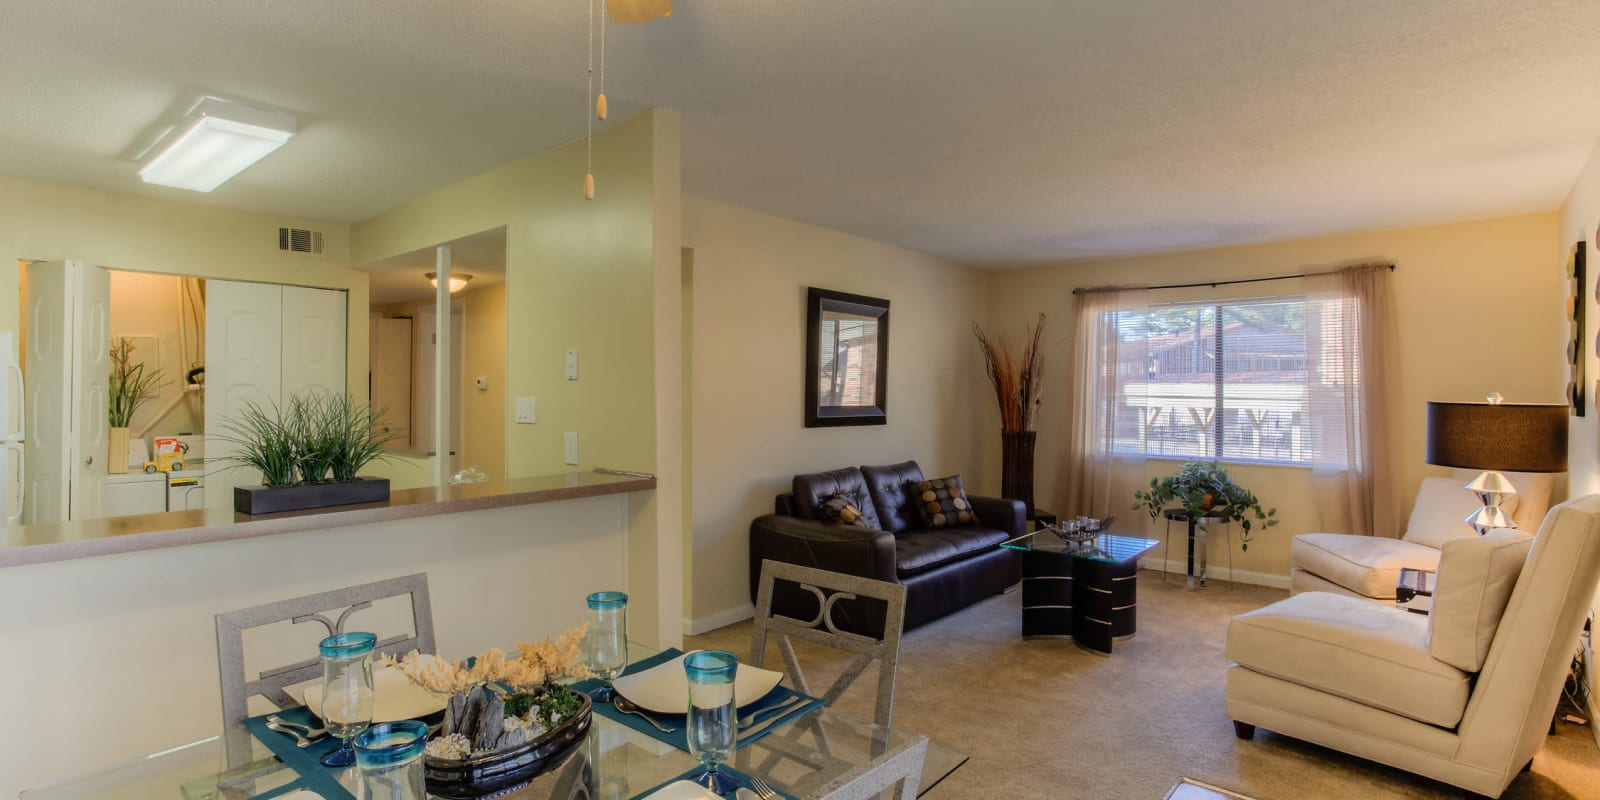 A dining room and kitchen with plush carpeting at Enclave at North Point Apartment Homes in Winston Salem, North Carolina